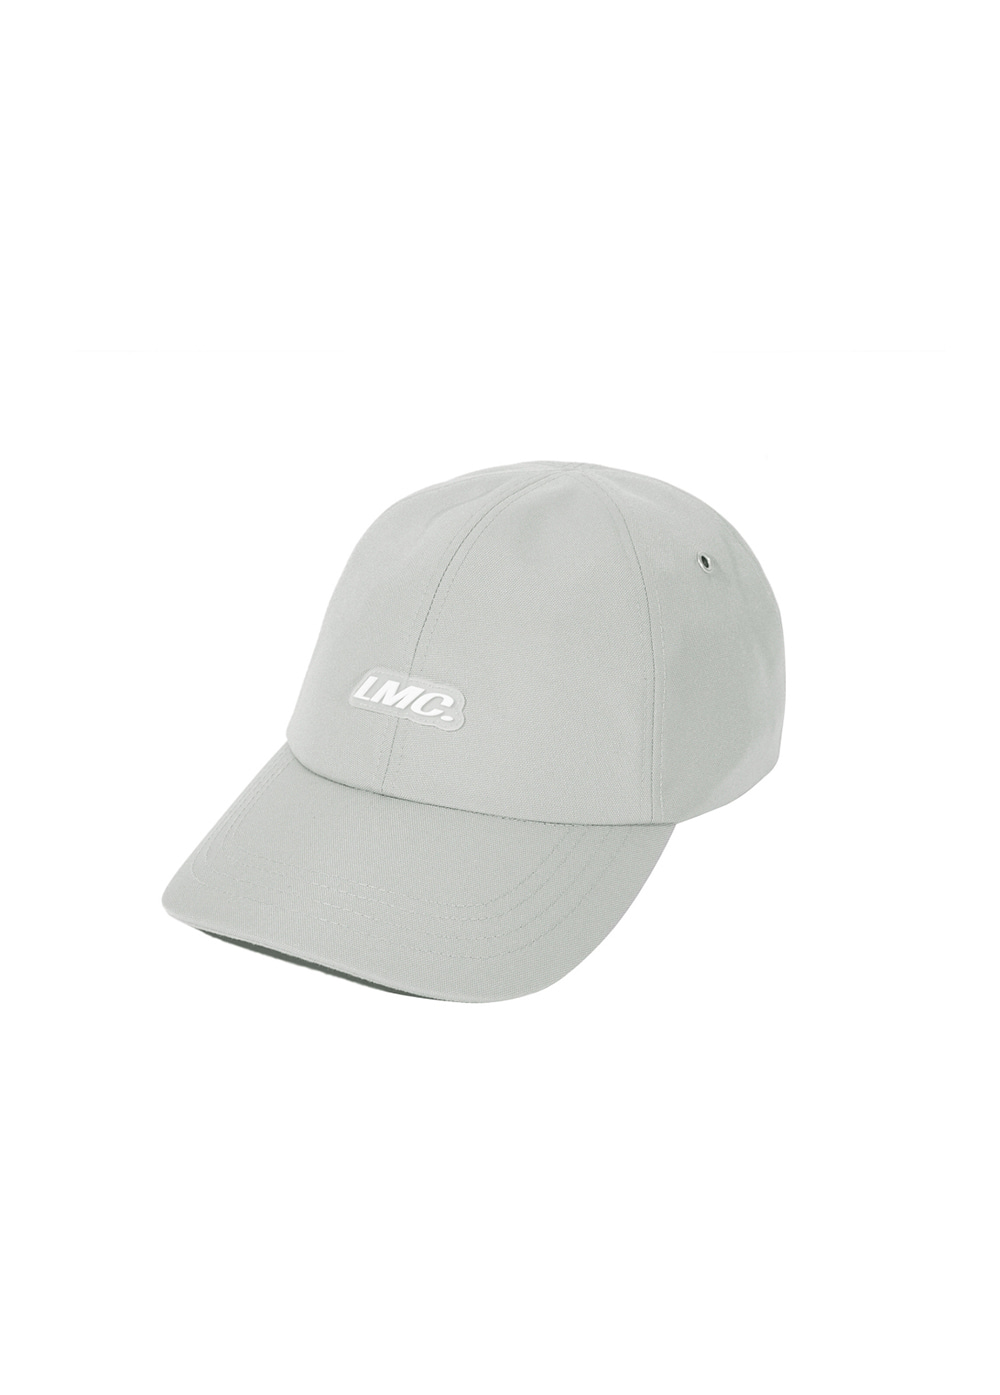 LMC ITALIC POLY 6 PANEL CAP lt. gray